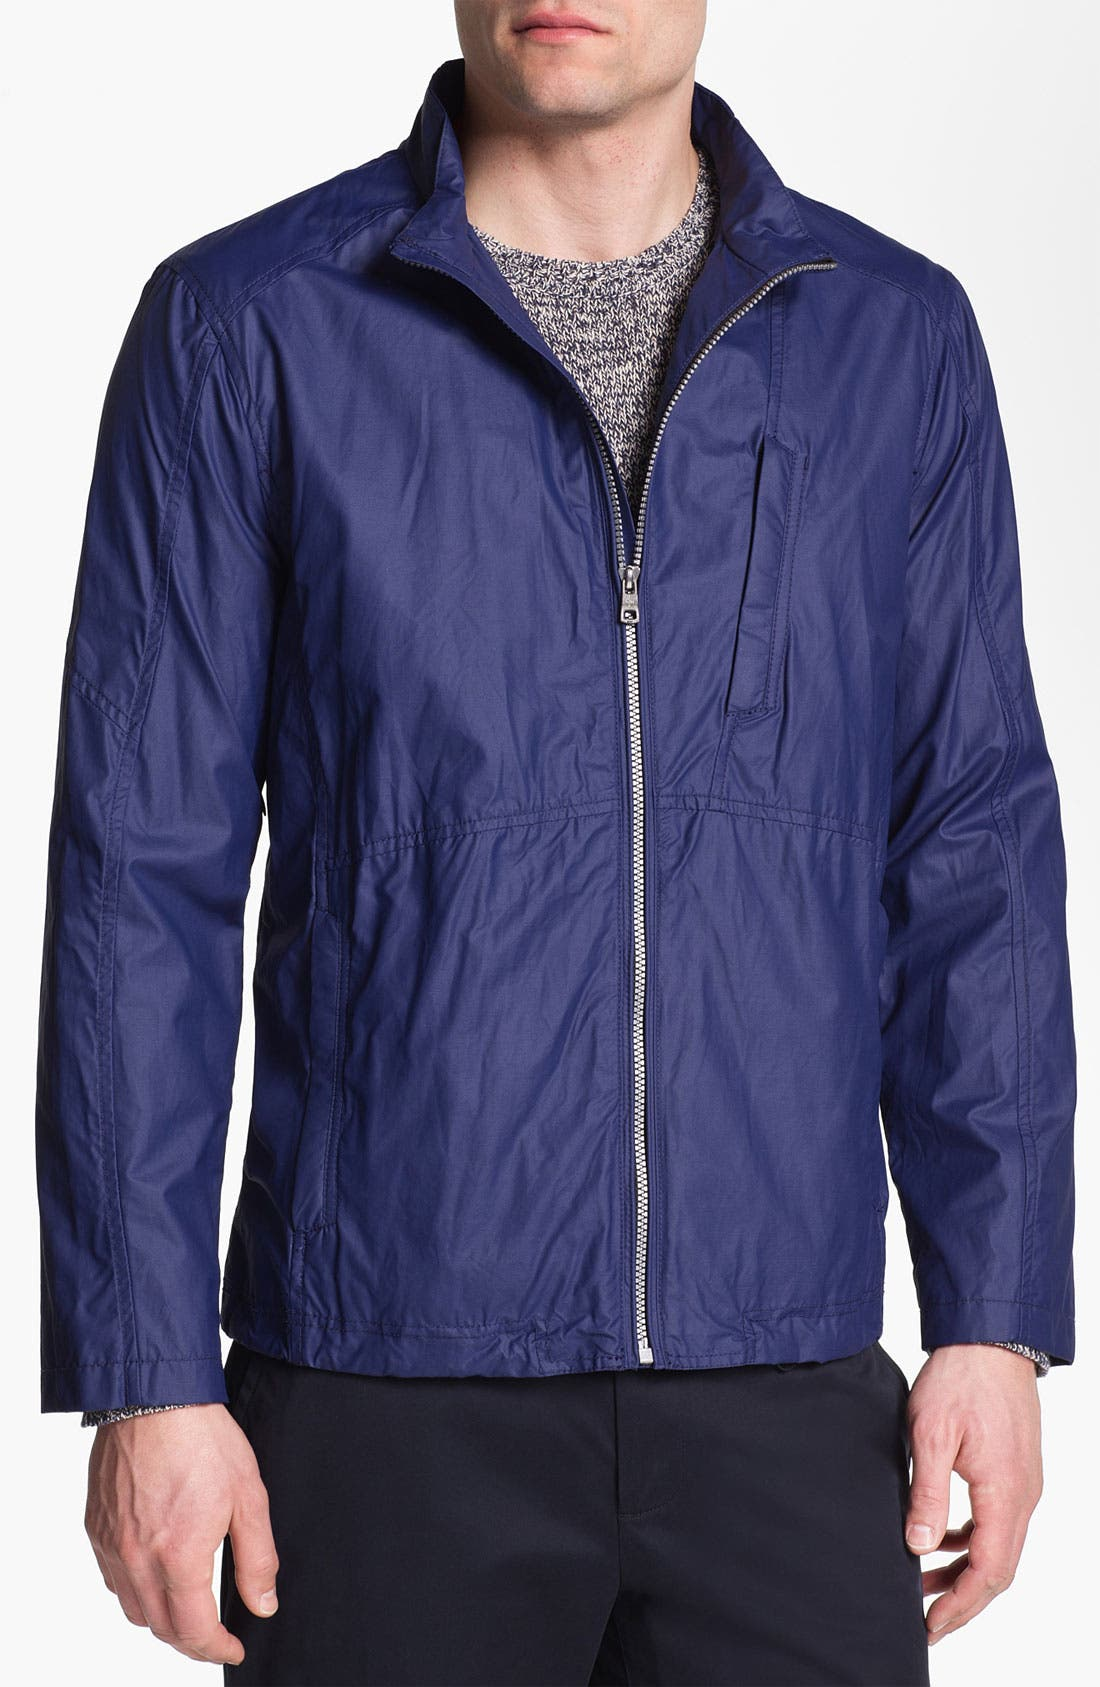 Alternate Image 1 Selected - Cole Haan Light Jacket